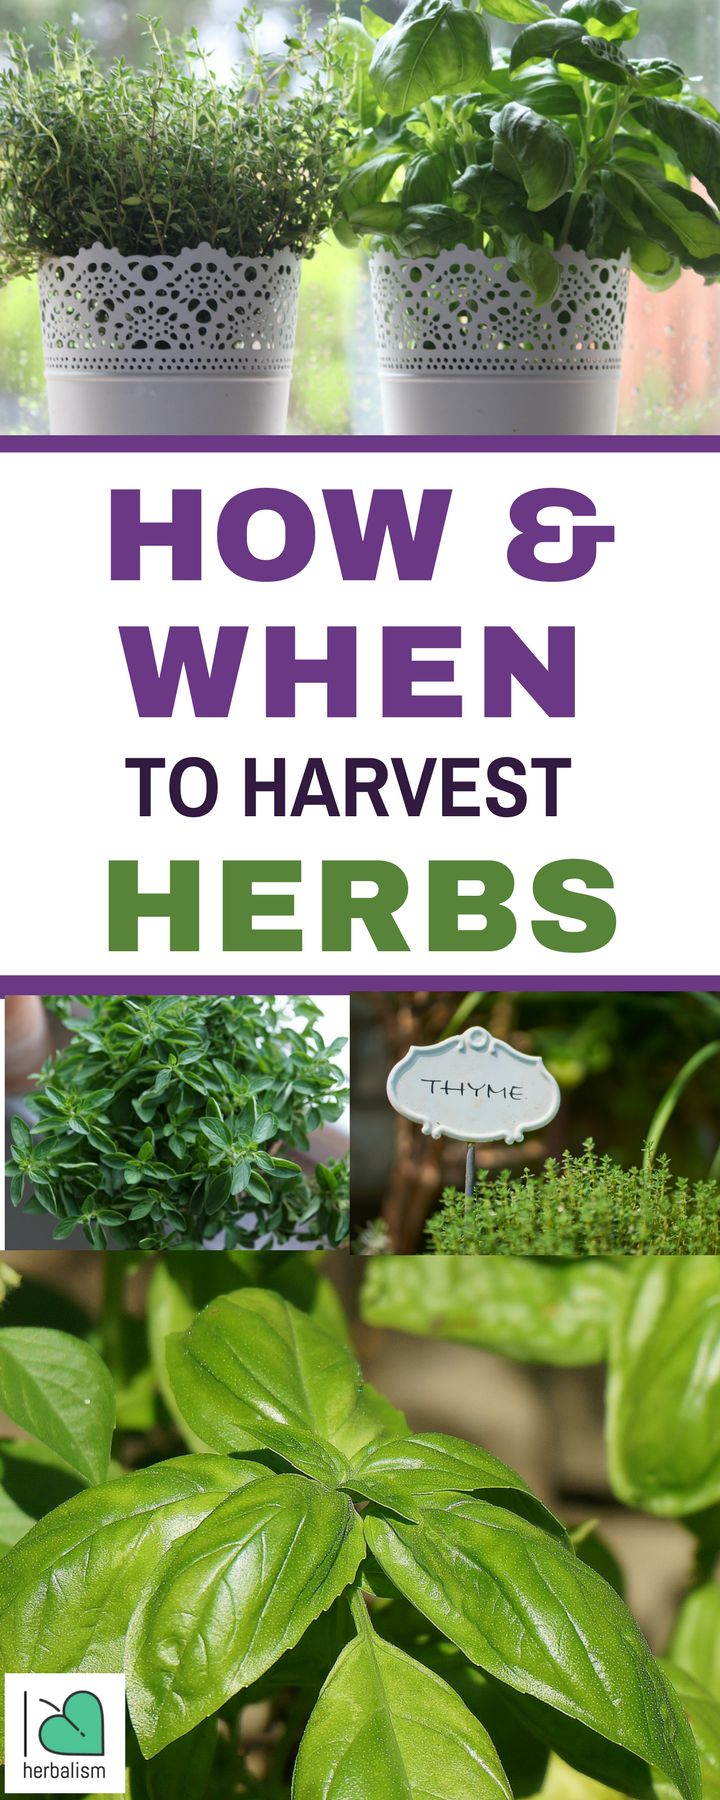 Growing your own herbs at home is a great way to enjoy fresh flavors all year long. But the weather is turning cooler and the days are getting shorter, and that means one thing: it's harvest time! There are a few things you should keep in mind when harvesting herbs, no matter what herb you're harvesting. Here's some practical advice   on how and when to harvest herbs.